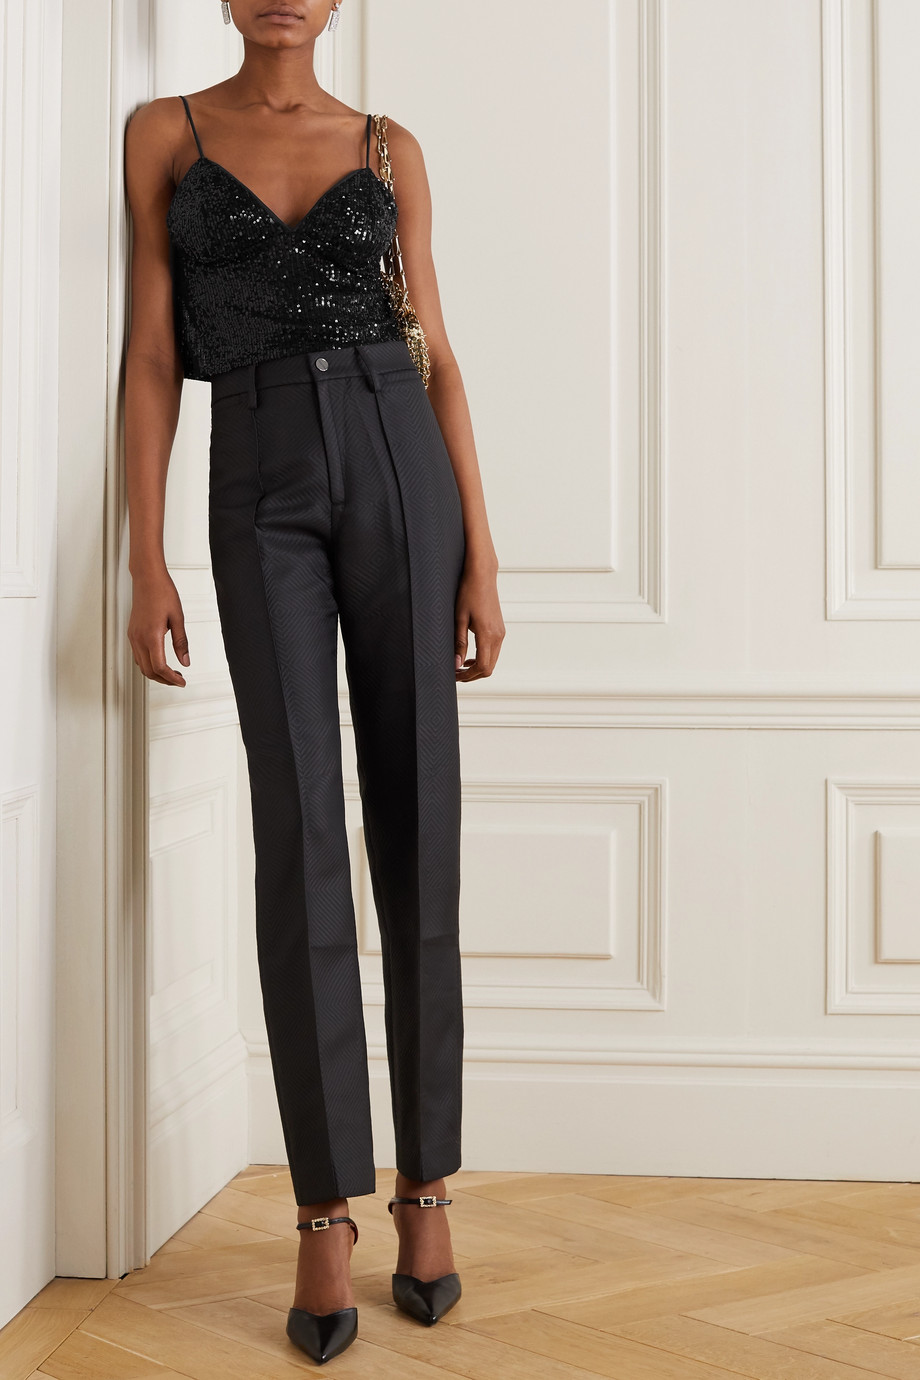 ROTATE Birger Christensen Cyndy cropped sequined tulle camisole